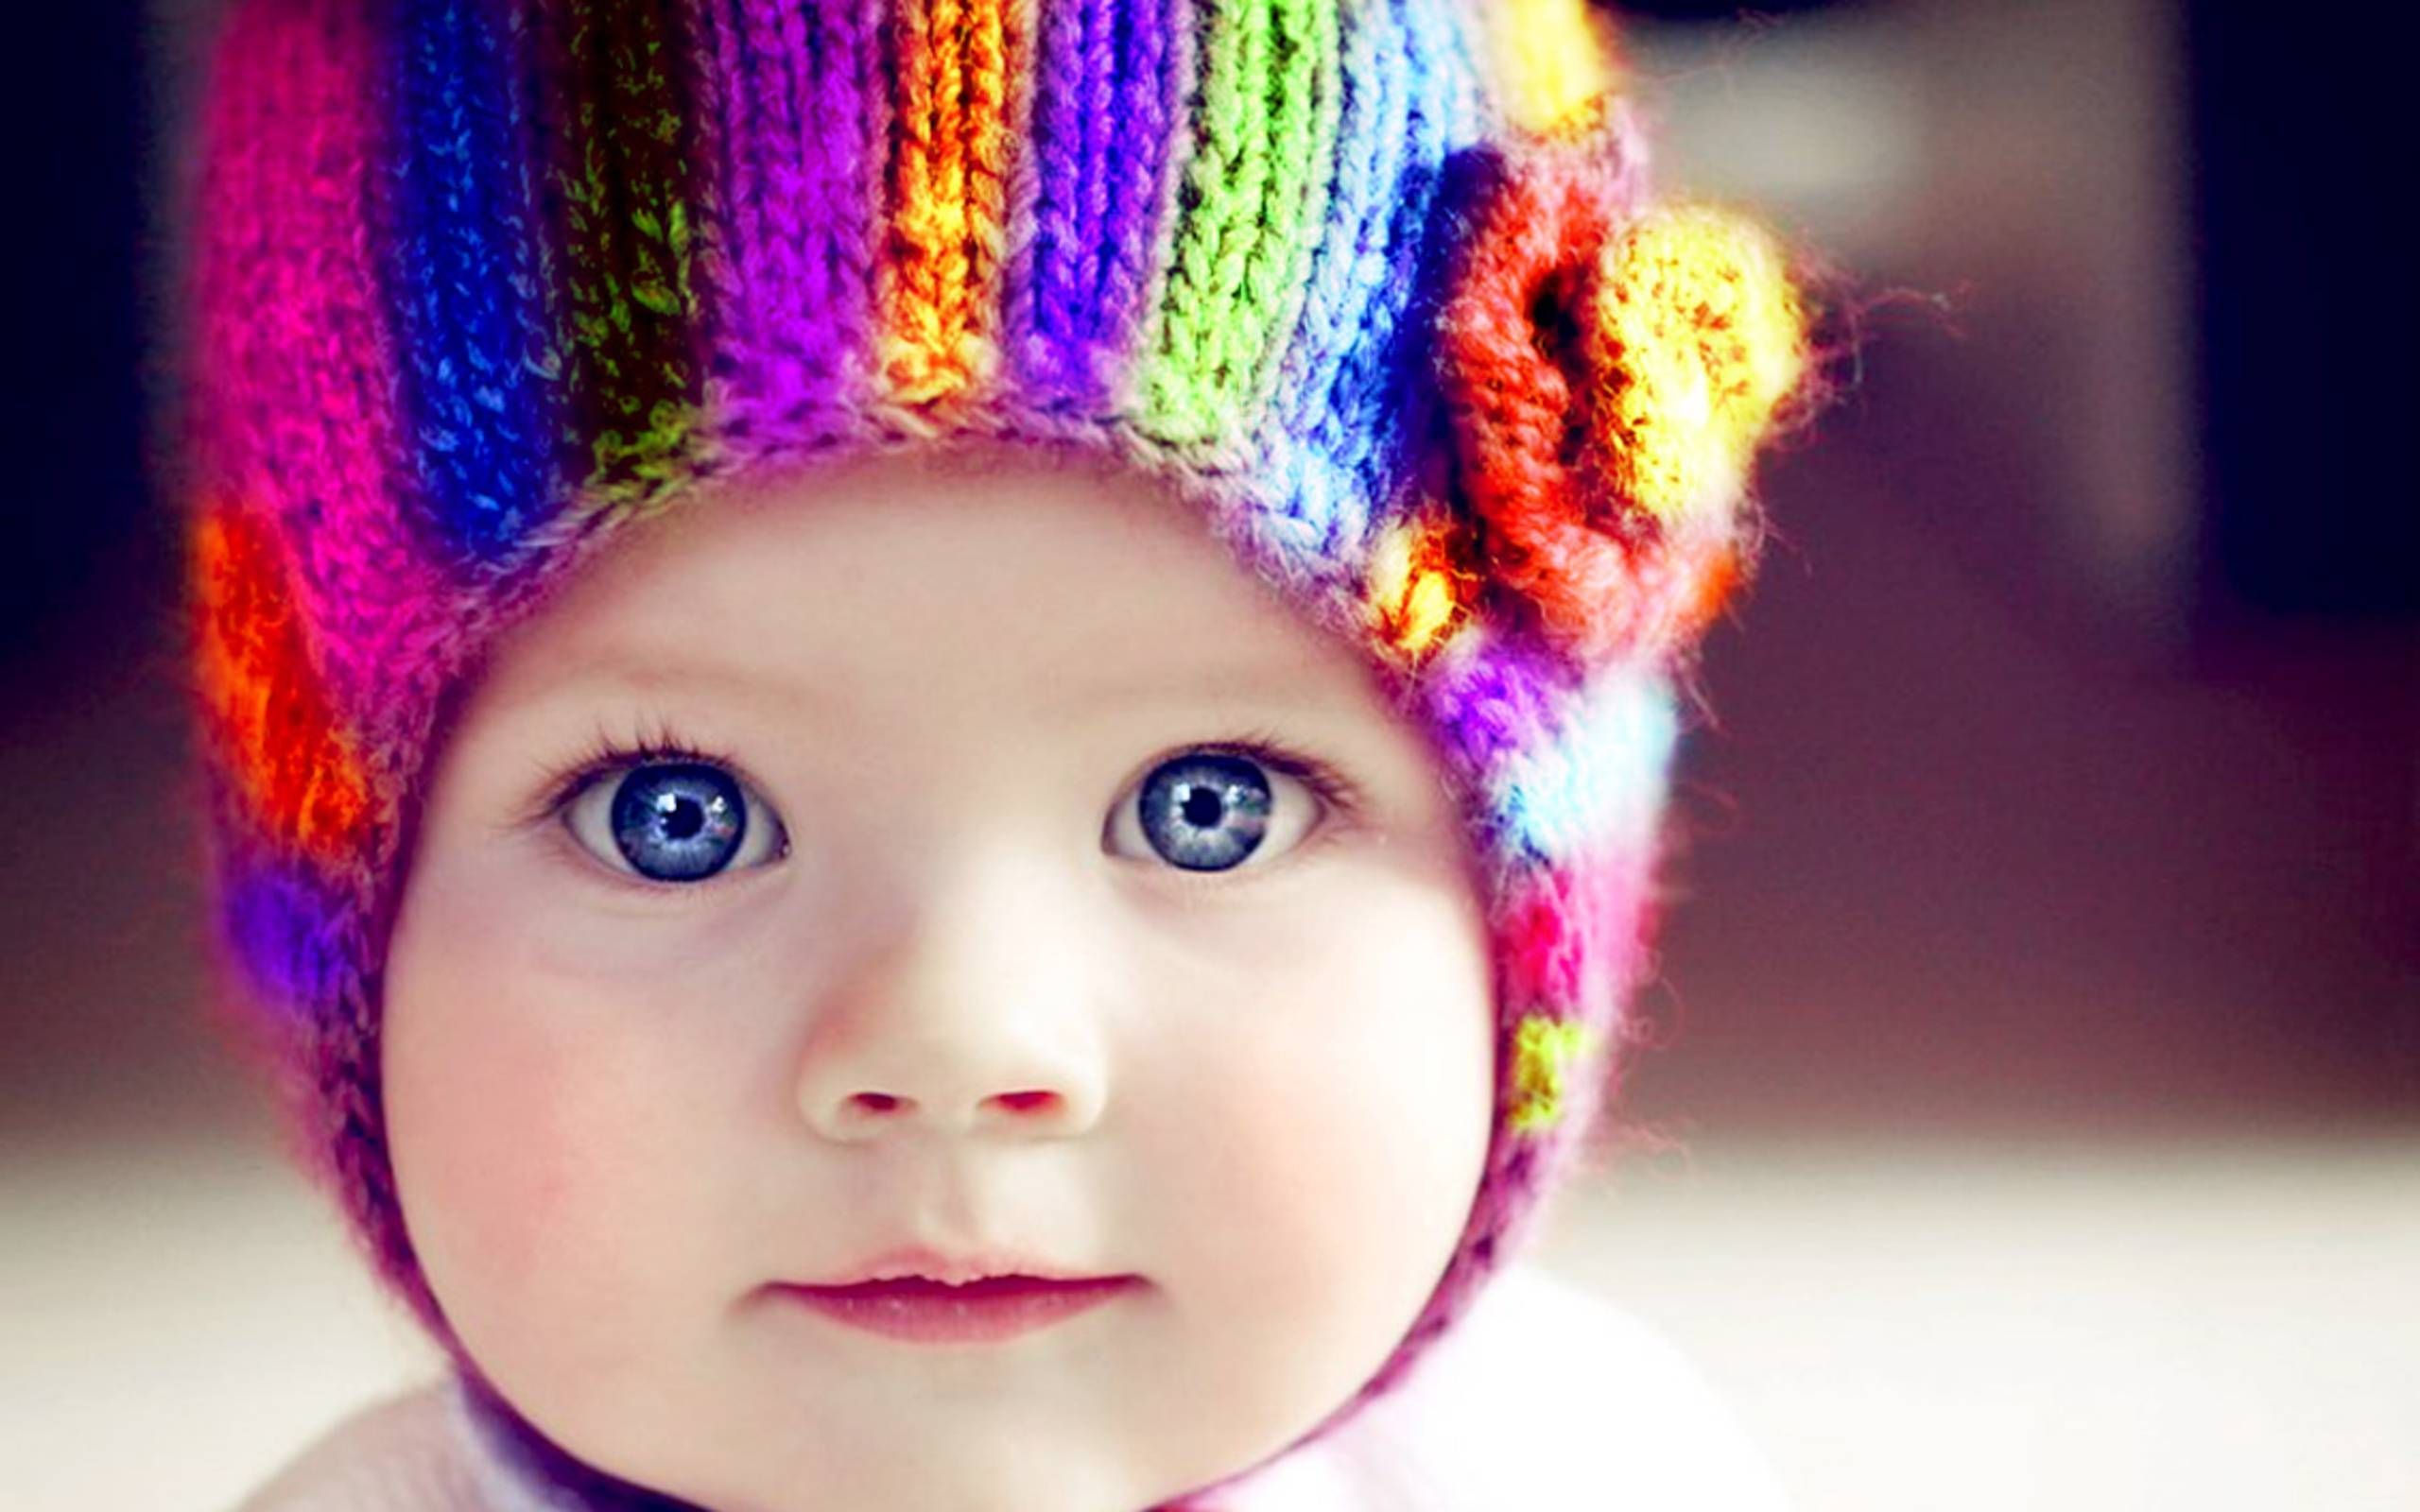 Cute babies with dimples cute babies wallpapers cute babies cute babies with dimples cute babies wallpapers cute babies wallpapers color voltagebd Choice Image